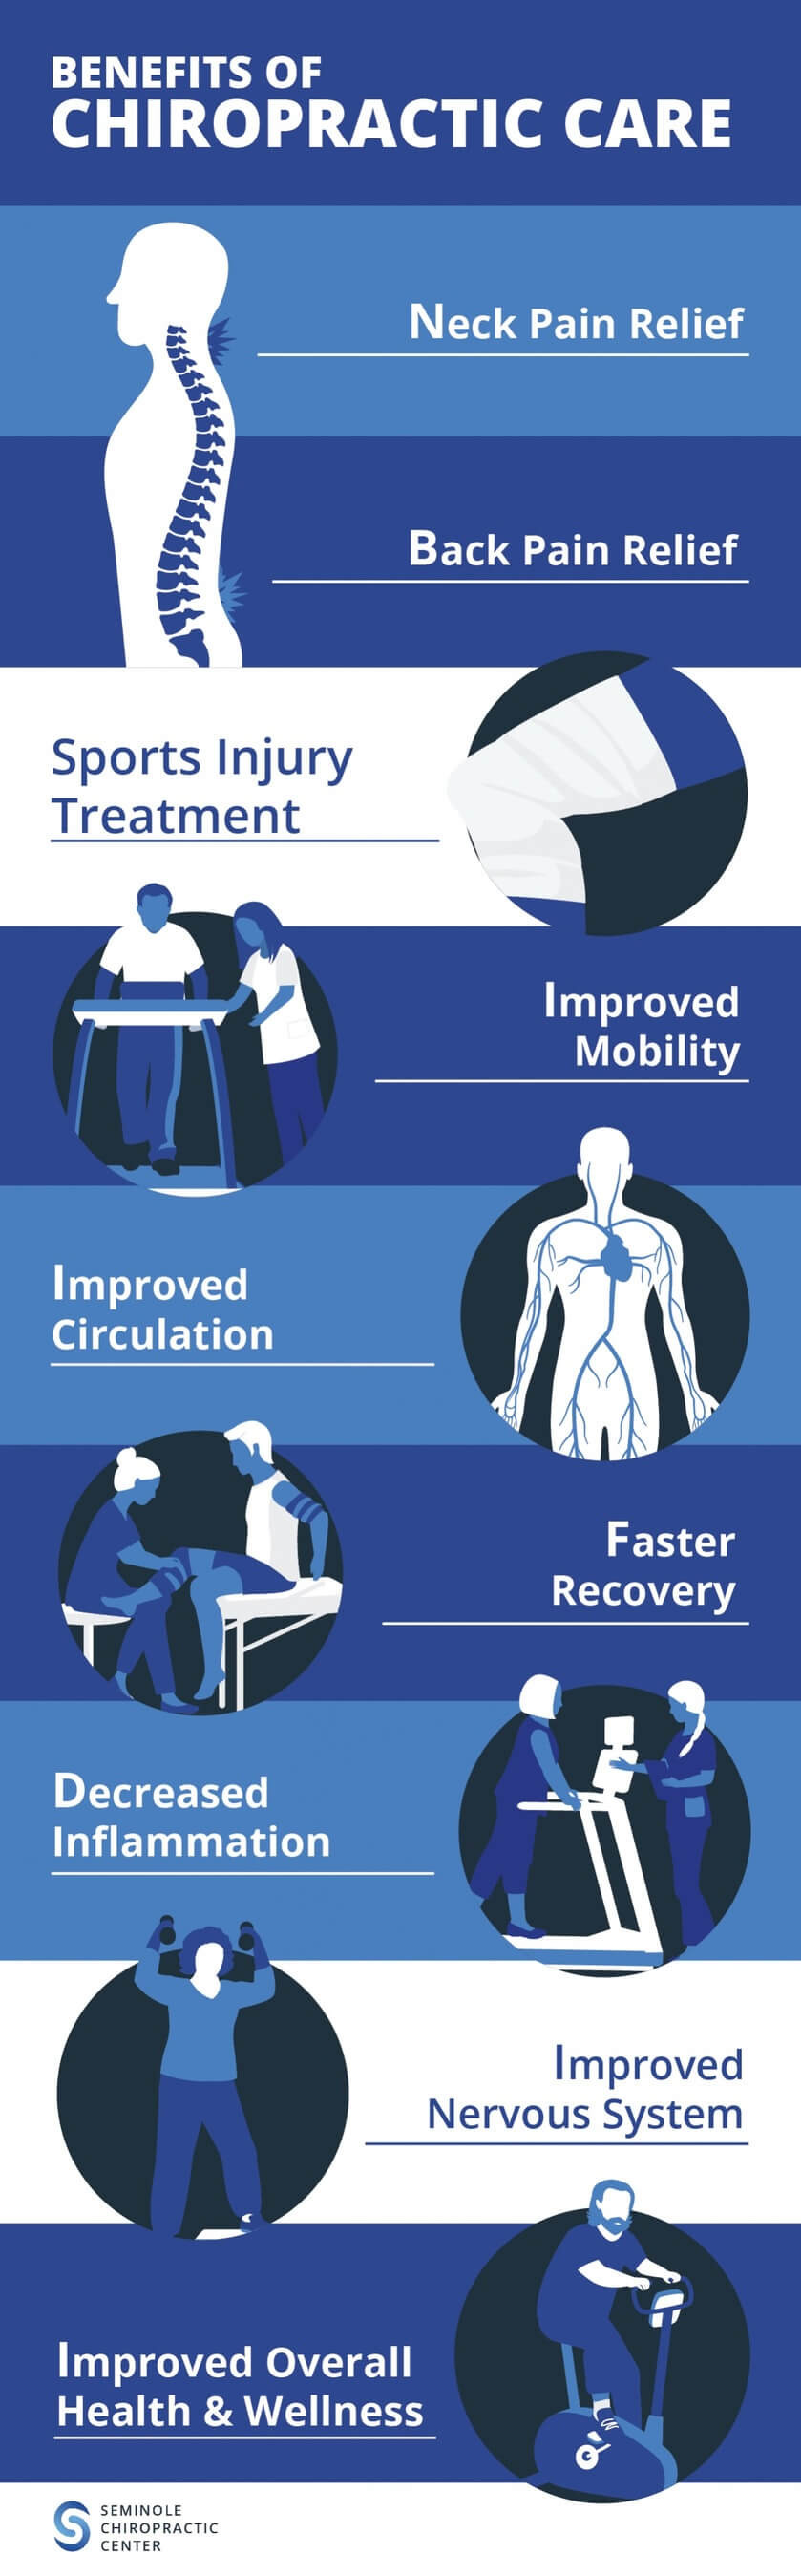 benefits of chiropractic care infographic